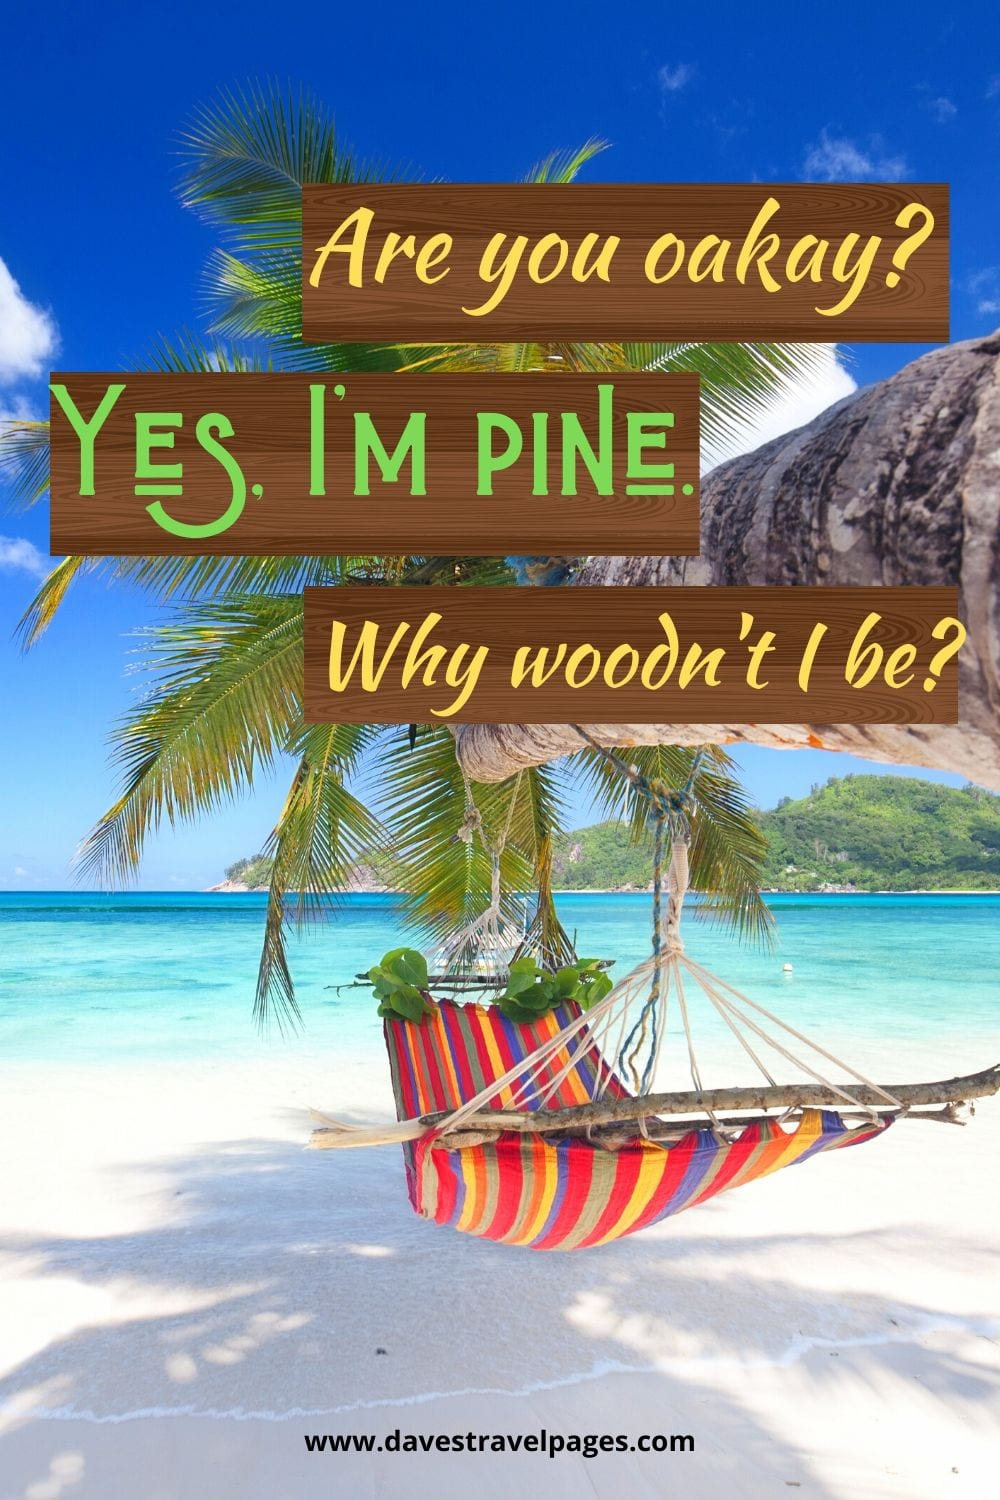 Nature Captions: Are you oakay? Yes, I'm pine. Why woodn't I be?